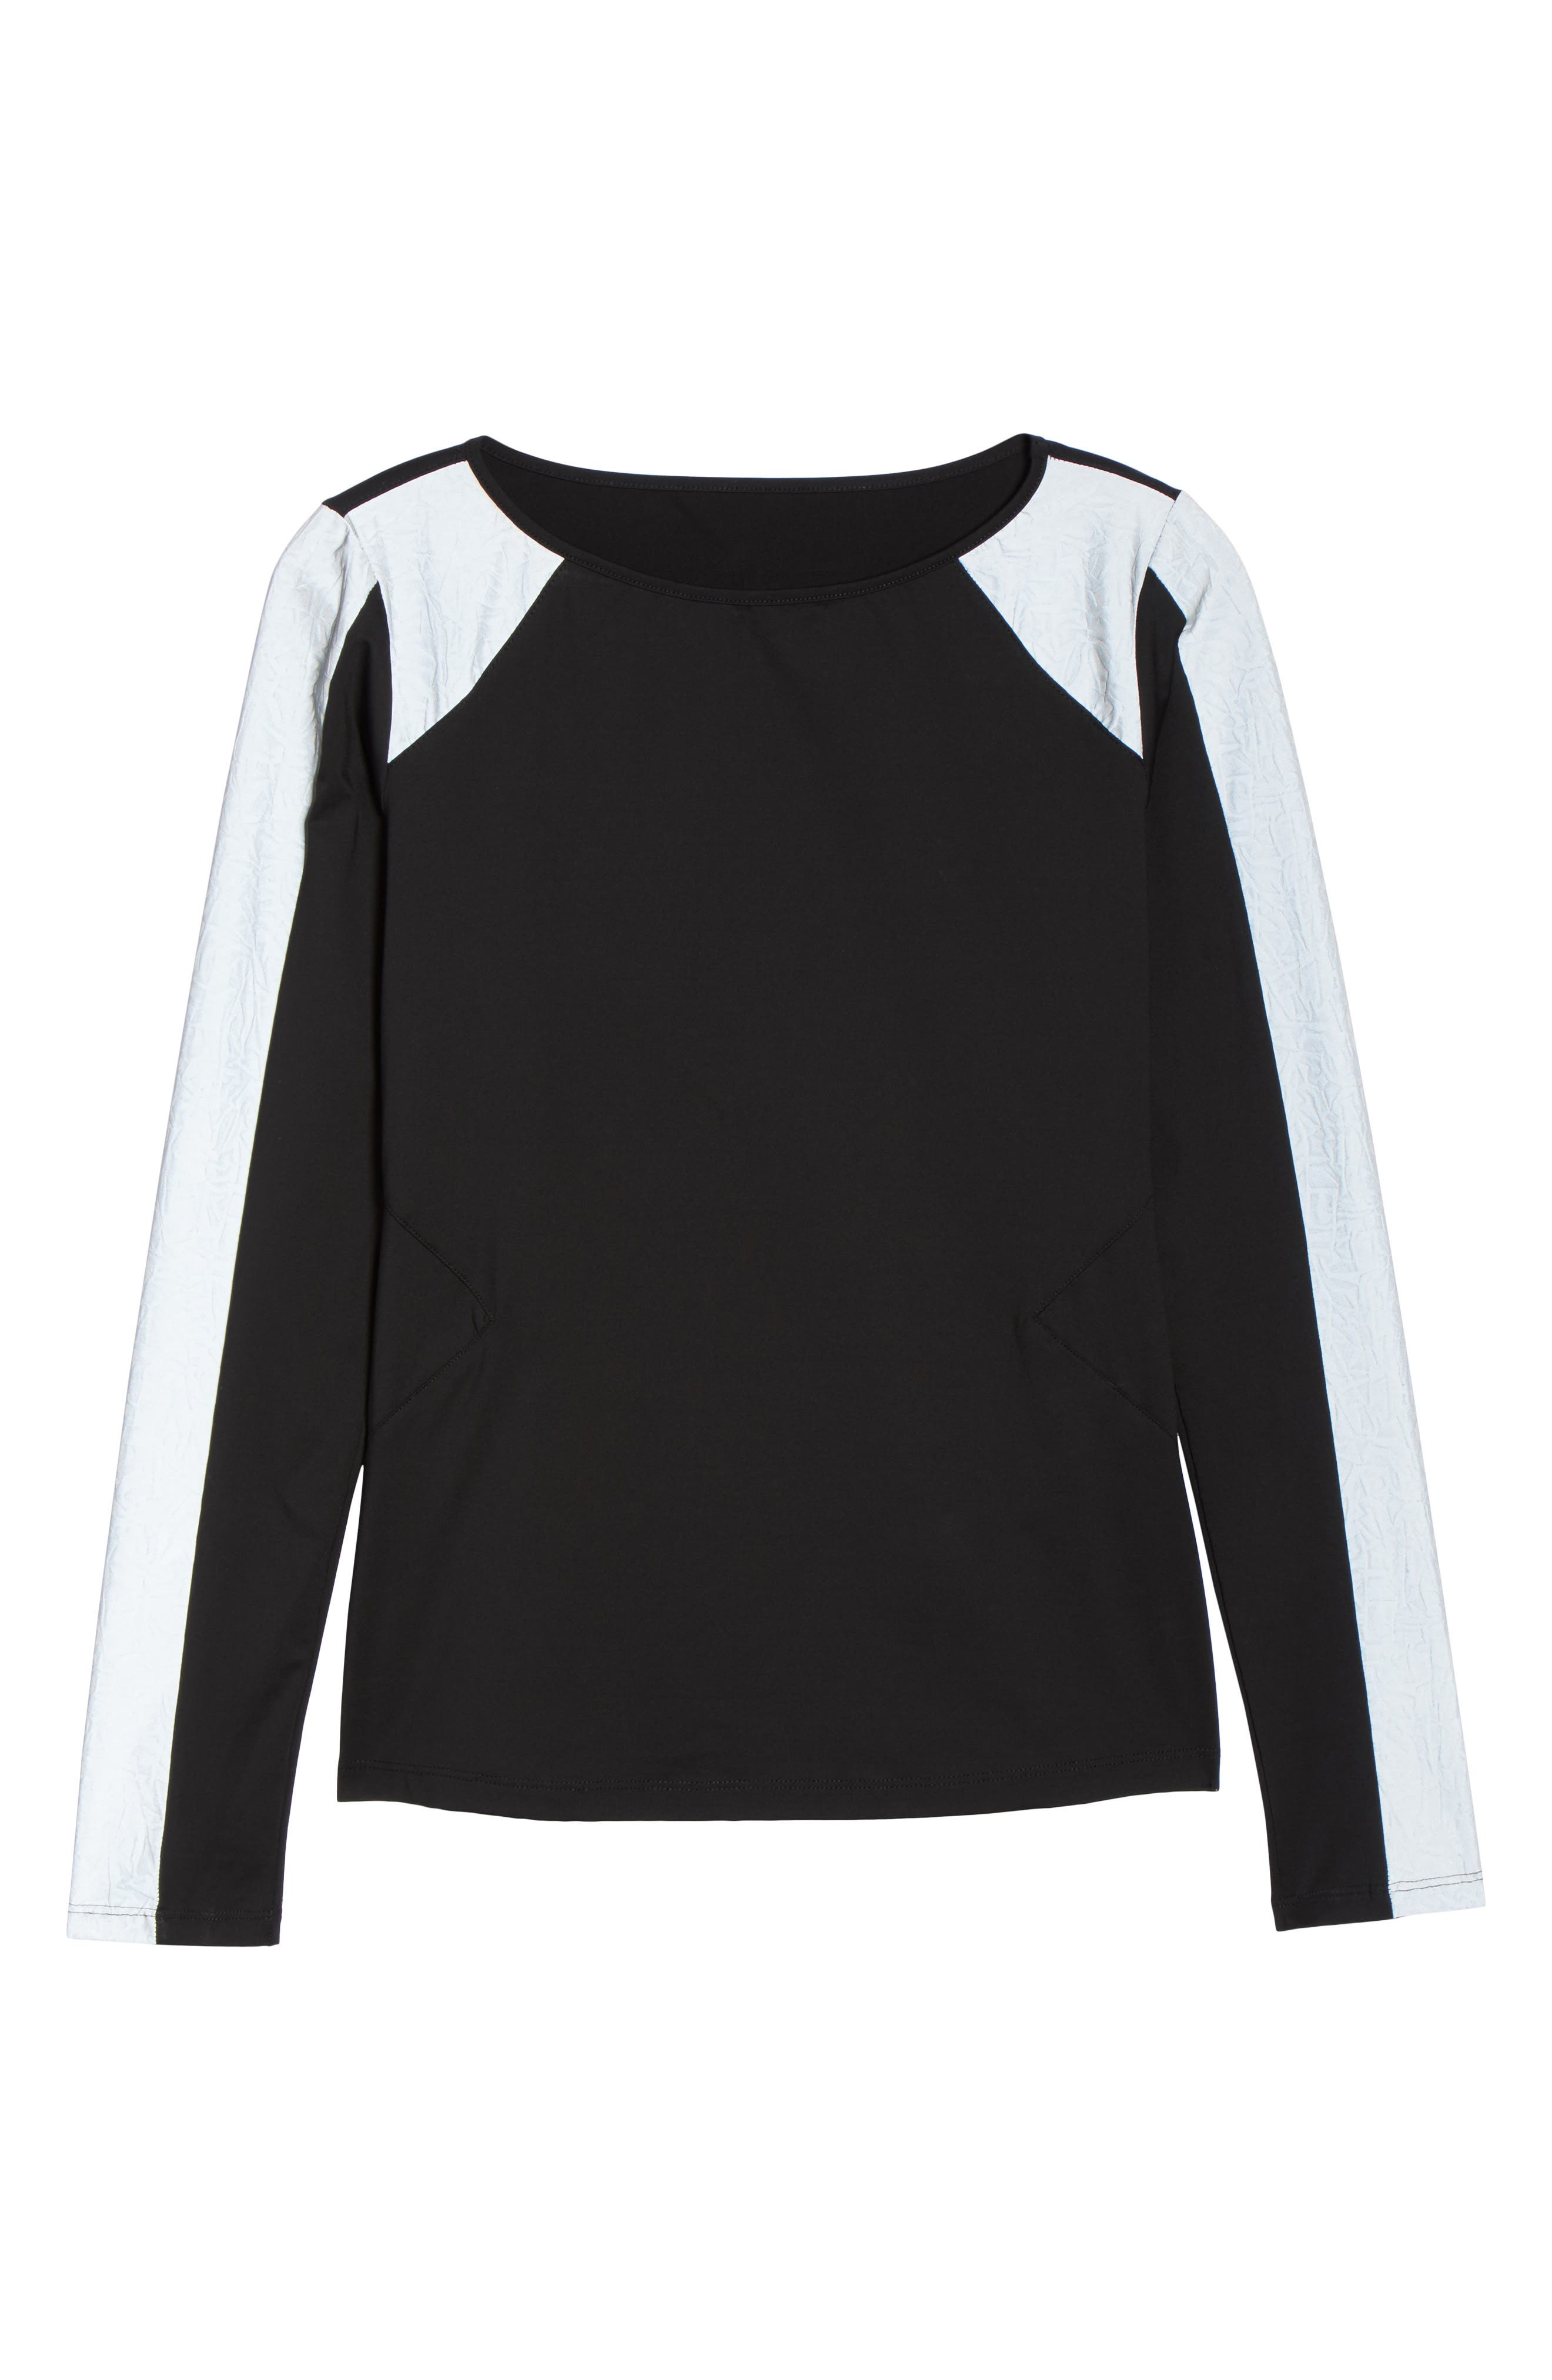 BoomBoom Athletica Reflective Body-Con Long Sleeve Tee,                             Alternate thumbnail 7, color,                             005